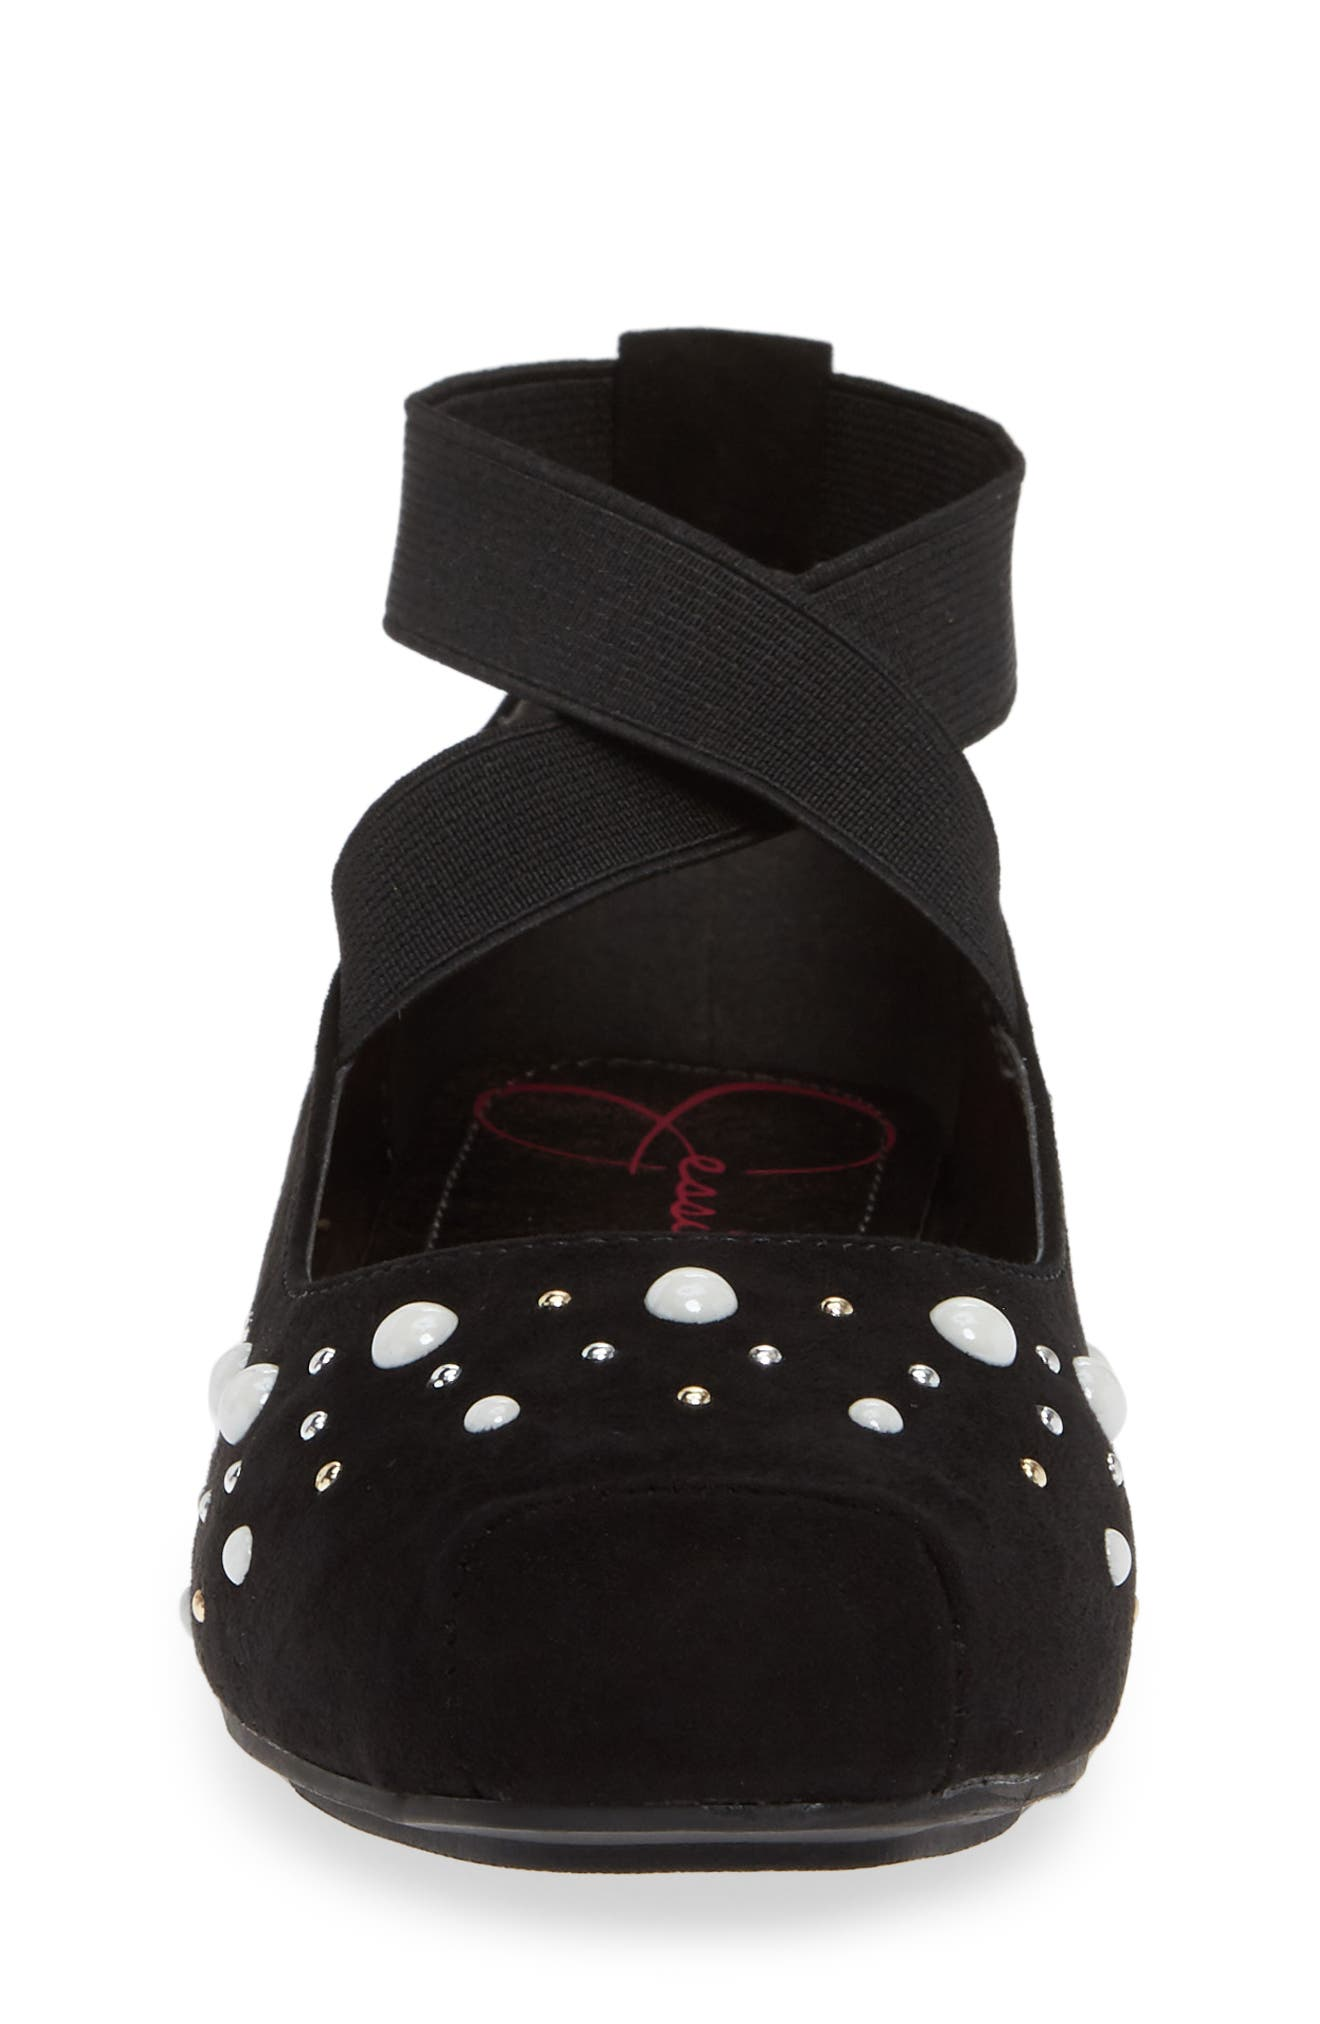 Cross Strap Ballet Flat,                             Alternate thumbnail 4, color,                             BLACK MICRO SUEDE W/ PEARLS